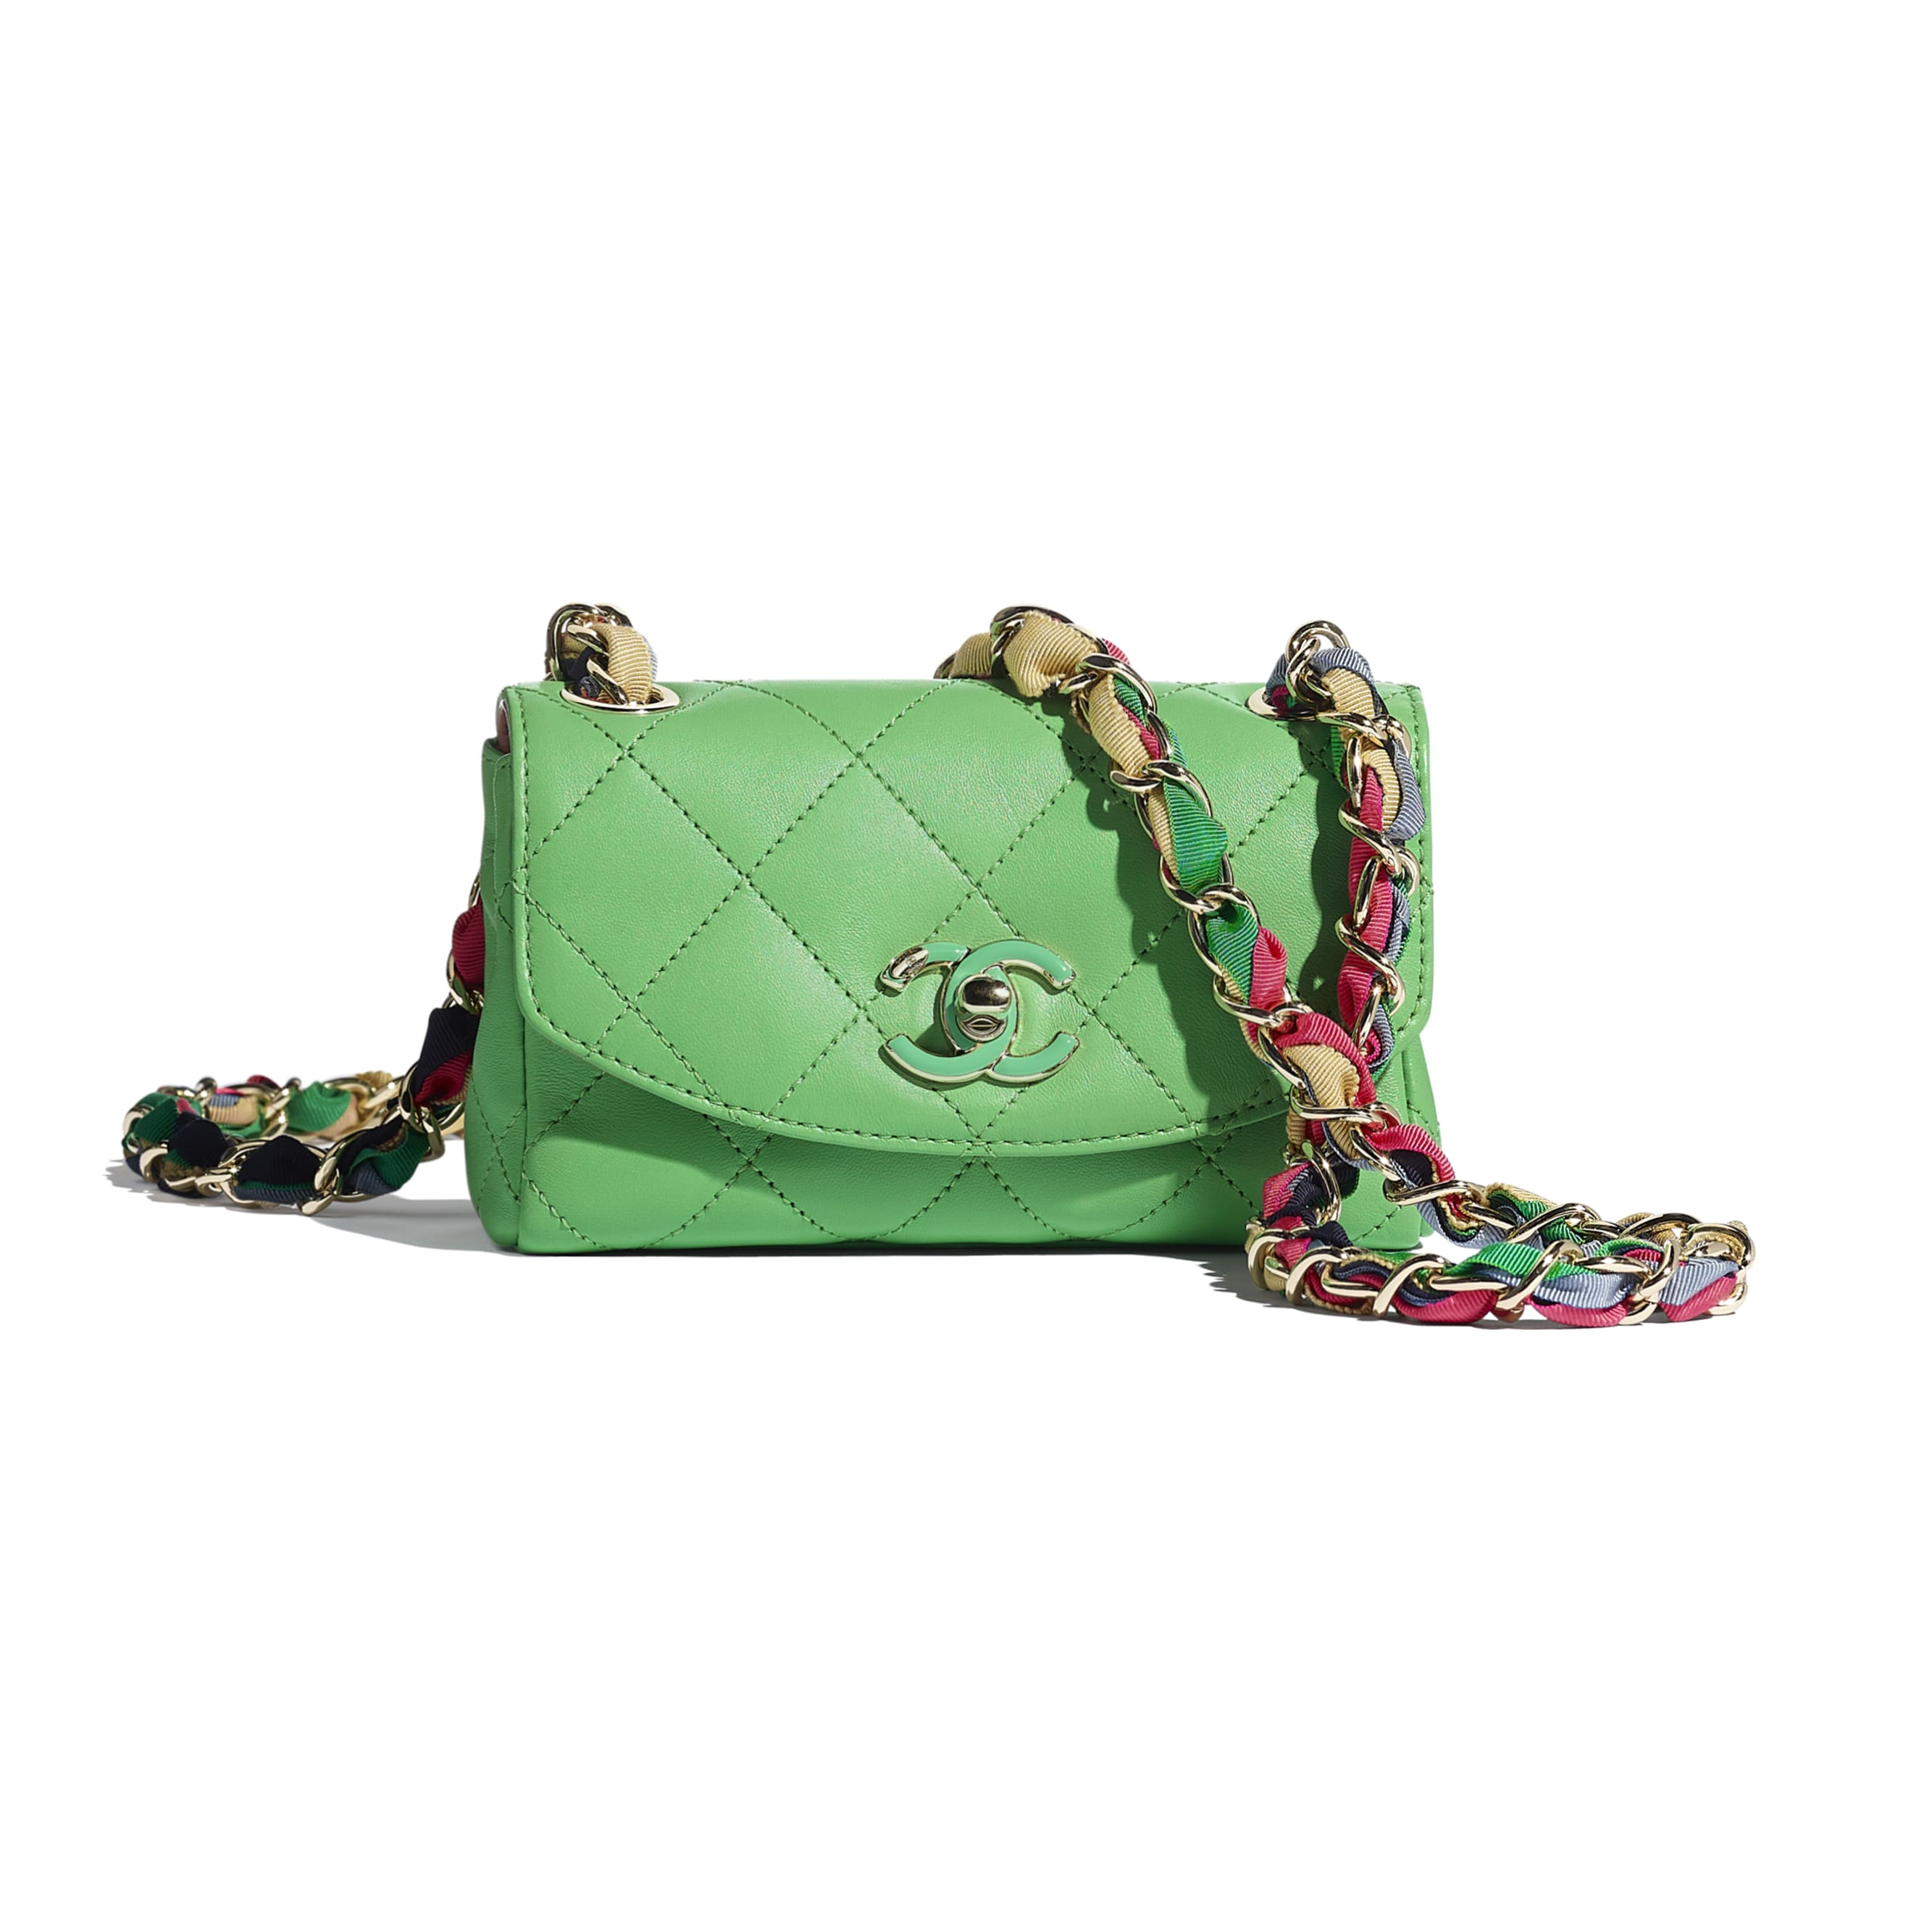 Small Flap Bag - Green - Lambskin, Mixed Fibers & Gold-Tone Metal - CHANEL - Default view - see standard sized version